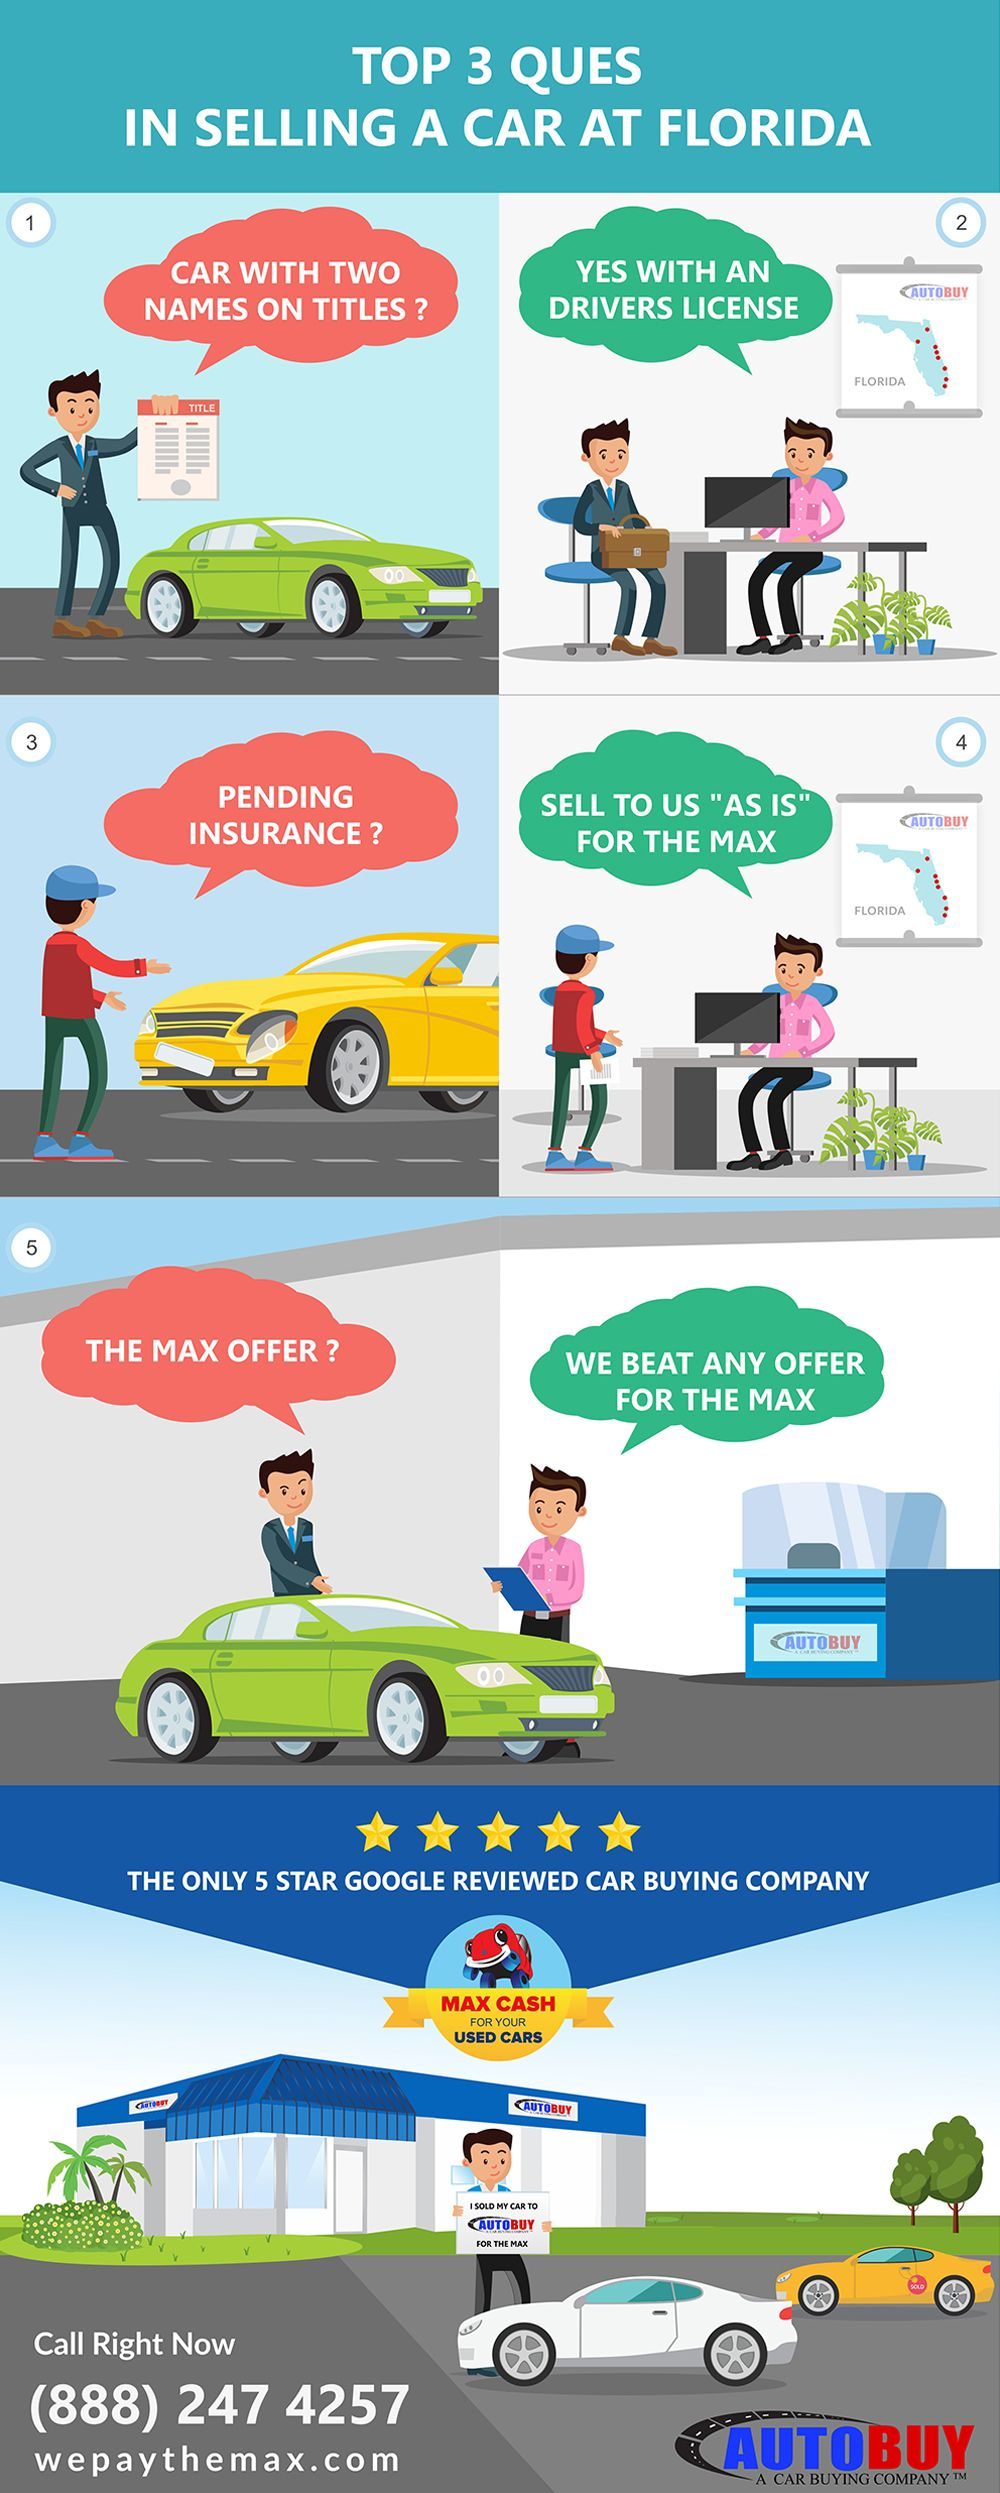 Customer queries for selling their used car! #autobuy #usedcars ...